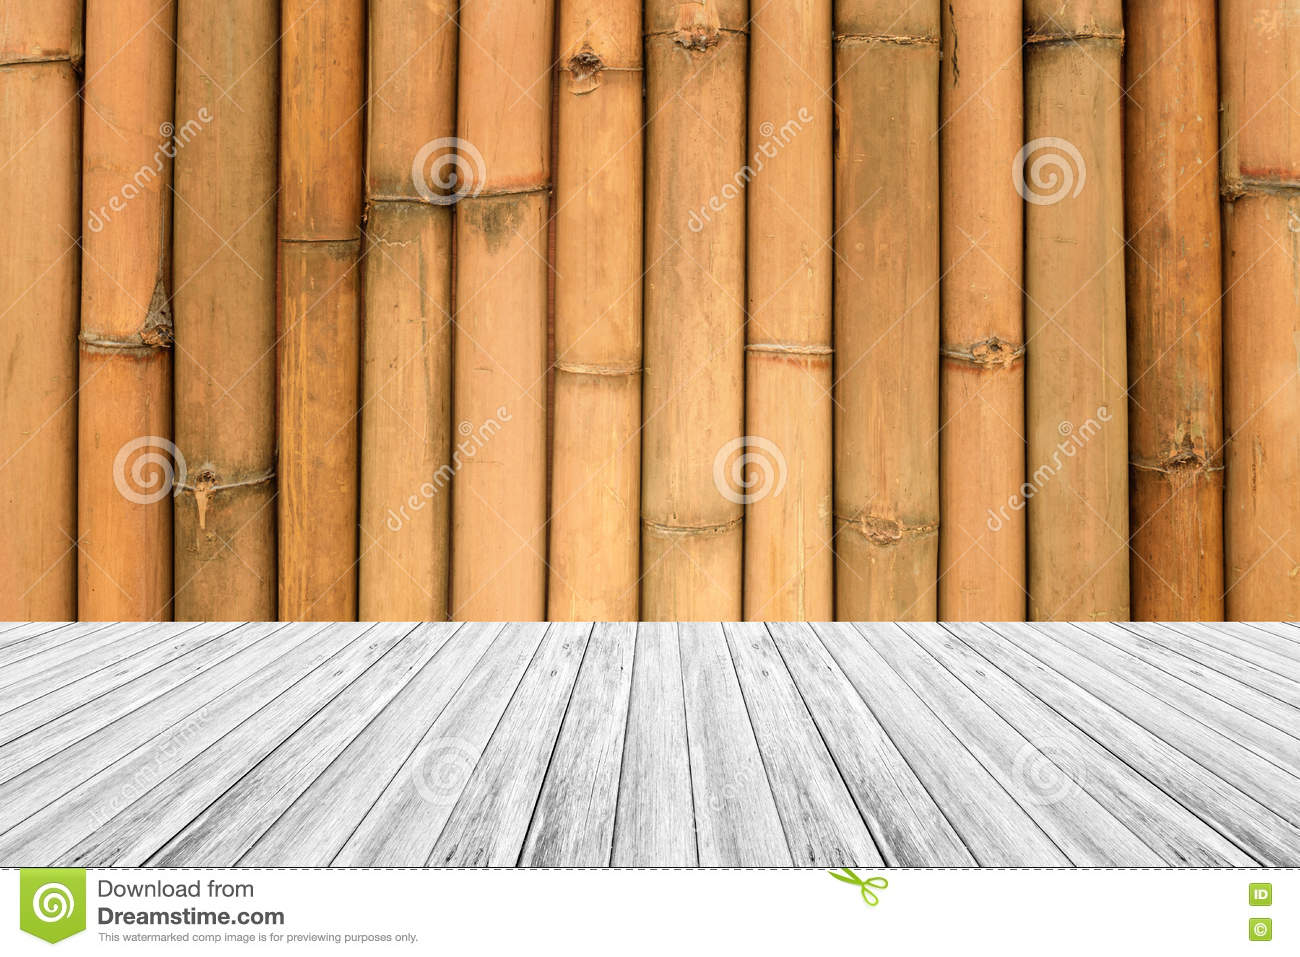 texture terrasse et de mur en bois de bambou image stock image du architecture asiatique. Black Bedroom Furniture Sets. Home Design Ideas